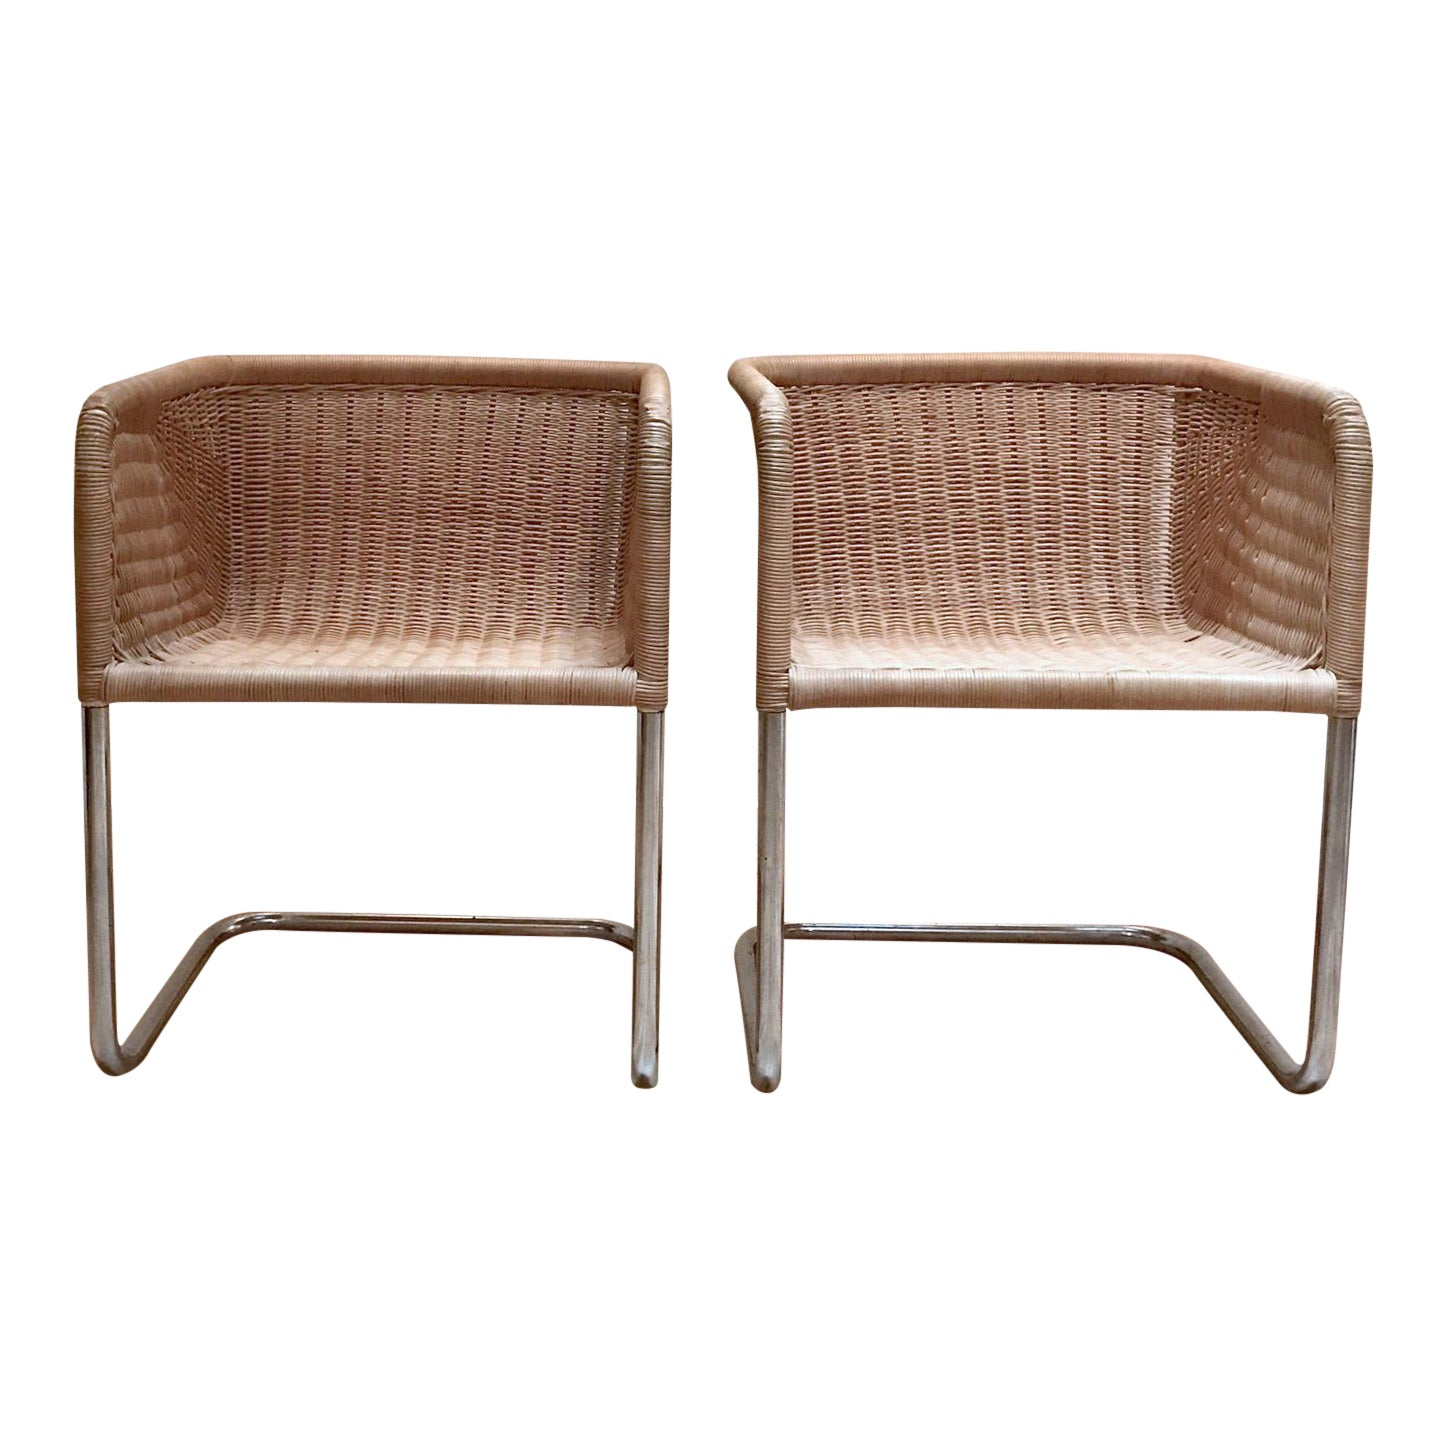 9582a16696317 Harvey Probber Wicker Cantilever Chairs - A Pair